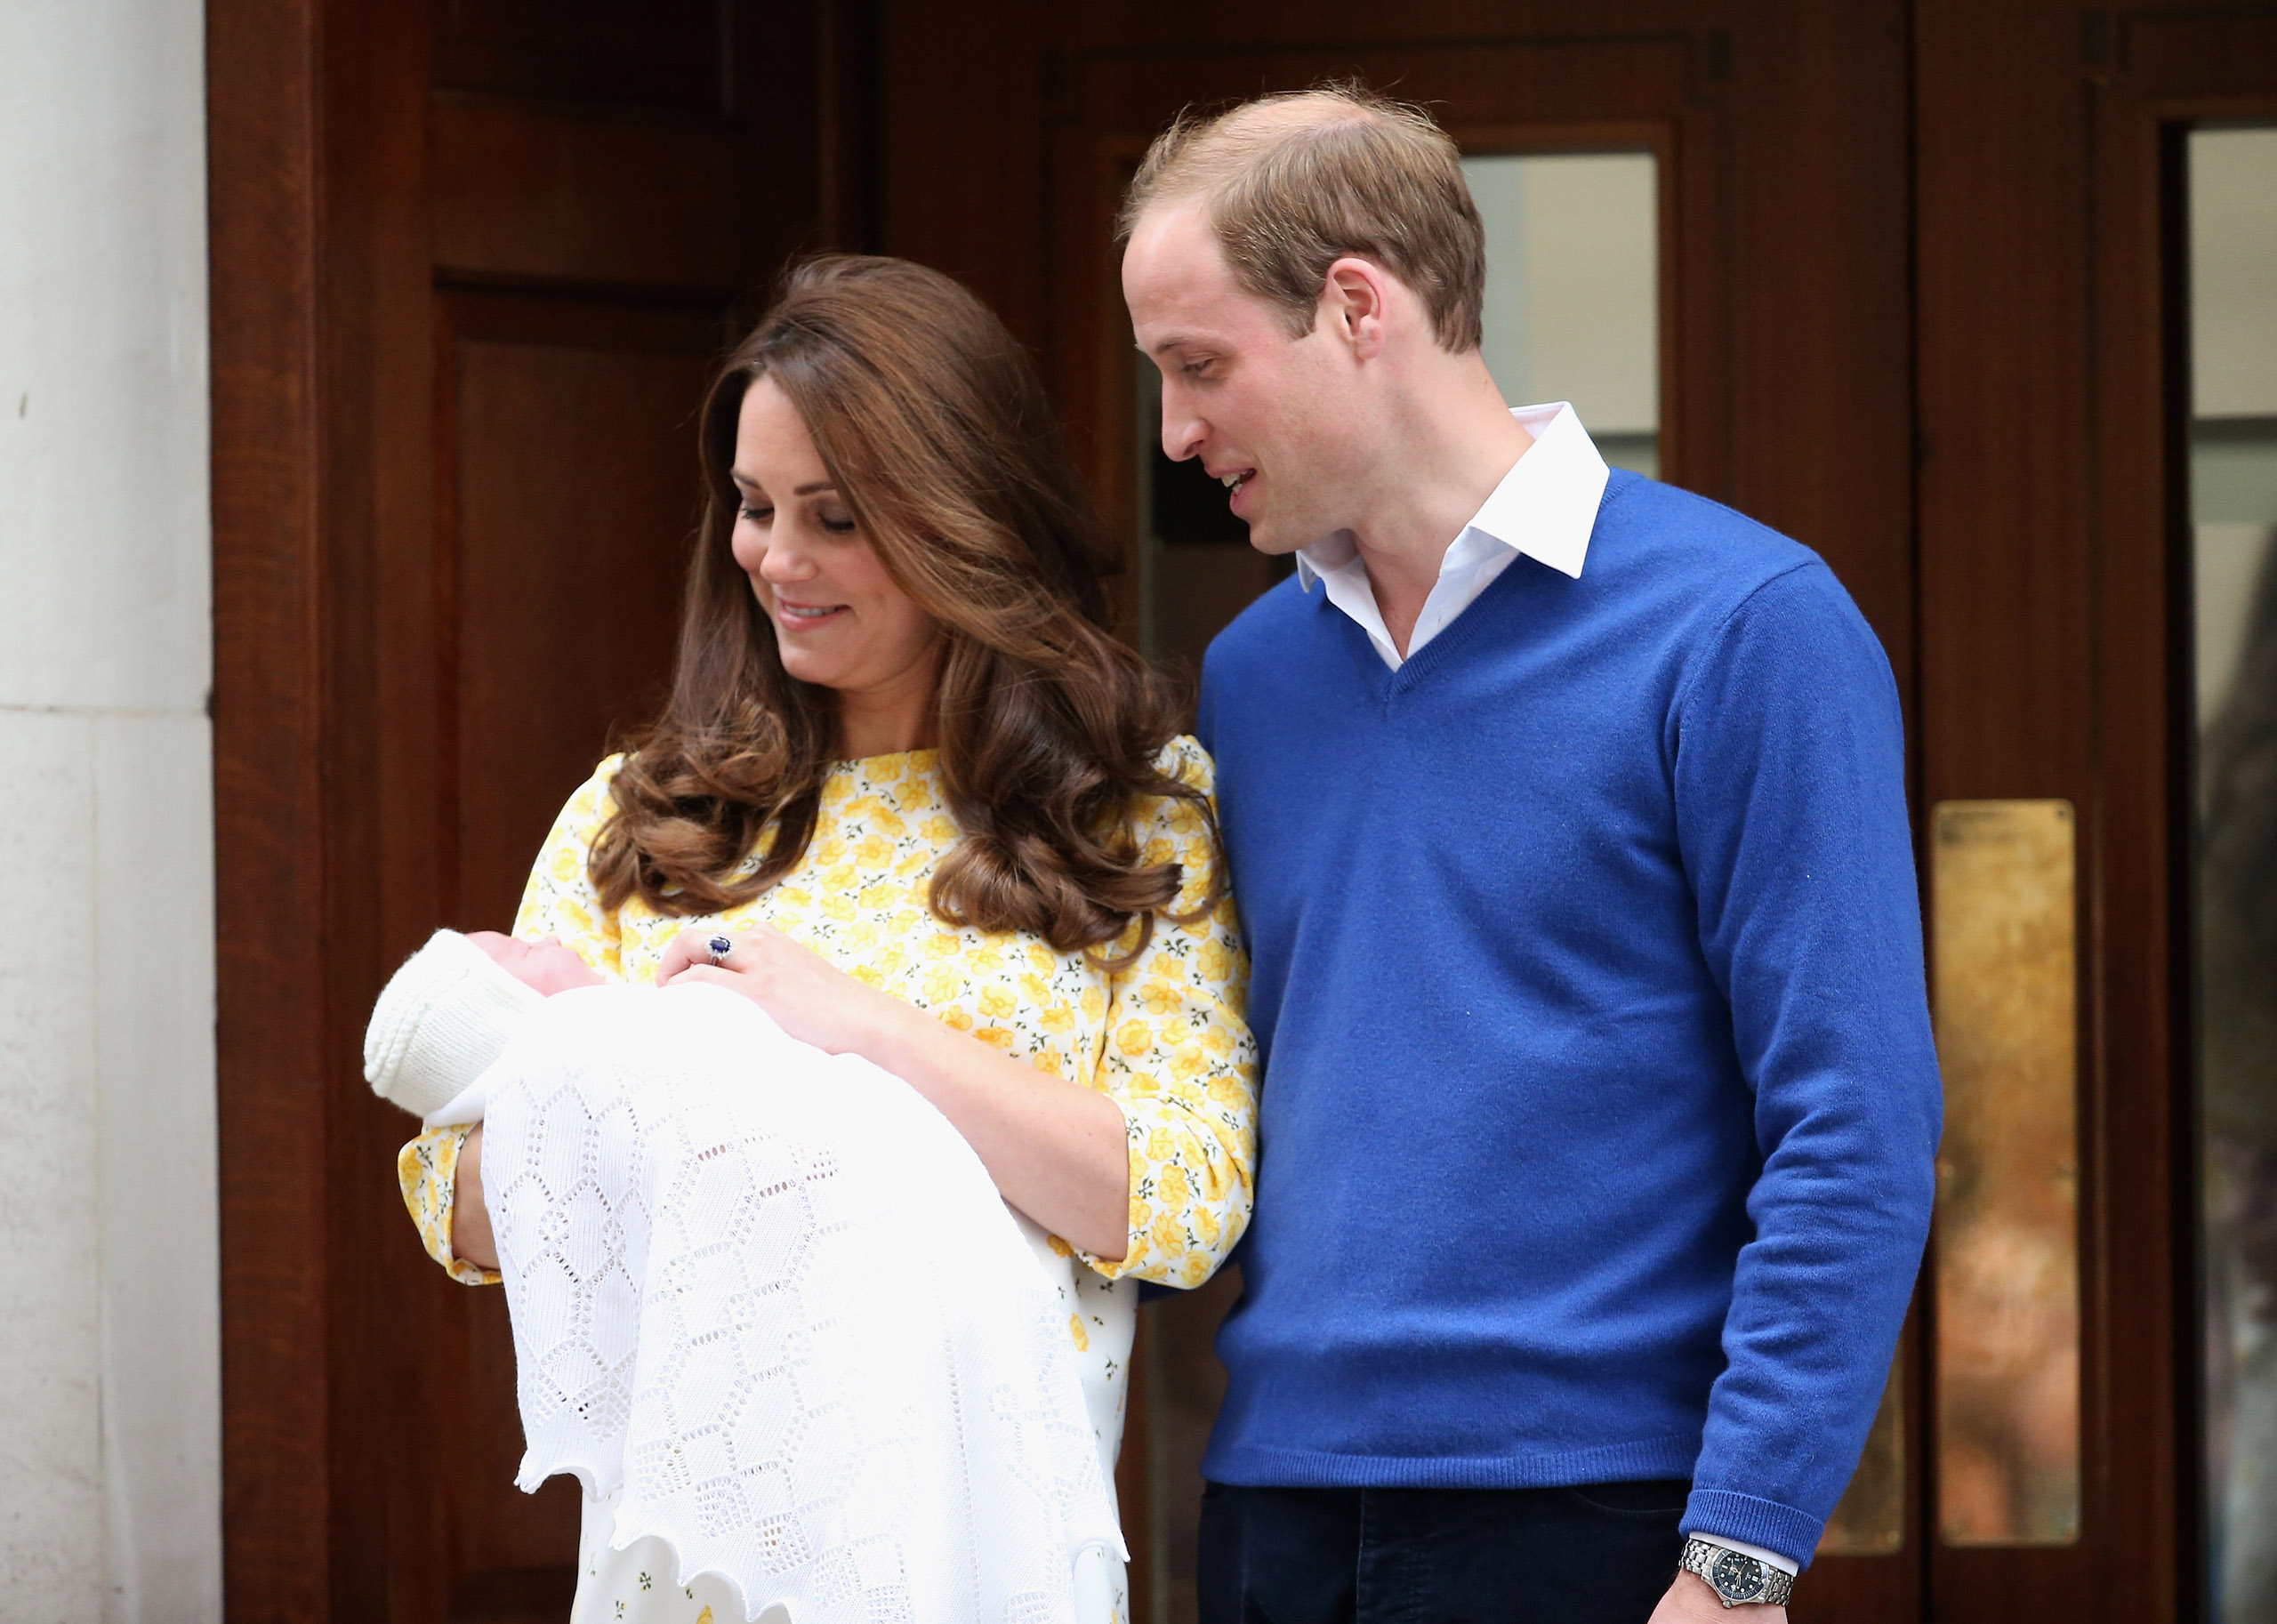 Prince William, Duke of Cambridge and Catherine, Duchess Of Cambridge depart the Lindo Wing with their new baby daughter, Princess Charlotte, at St Mary's Hospital in London on May 2, 2015.